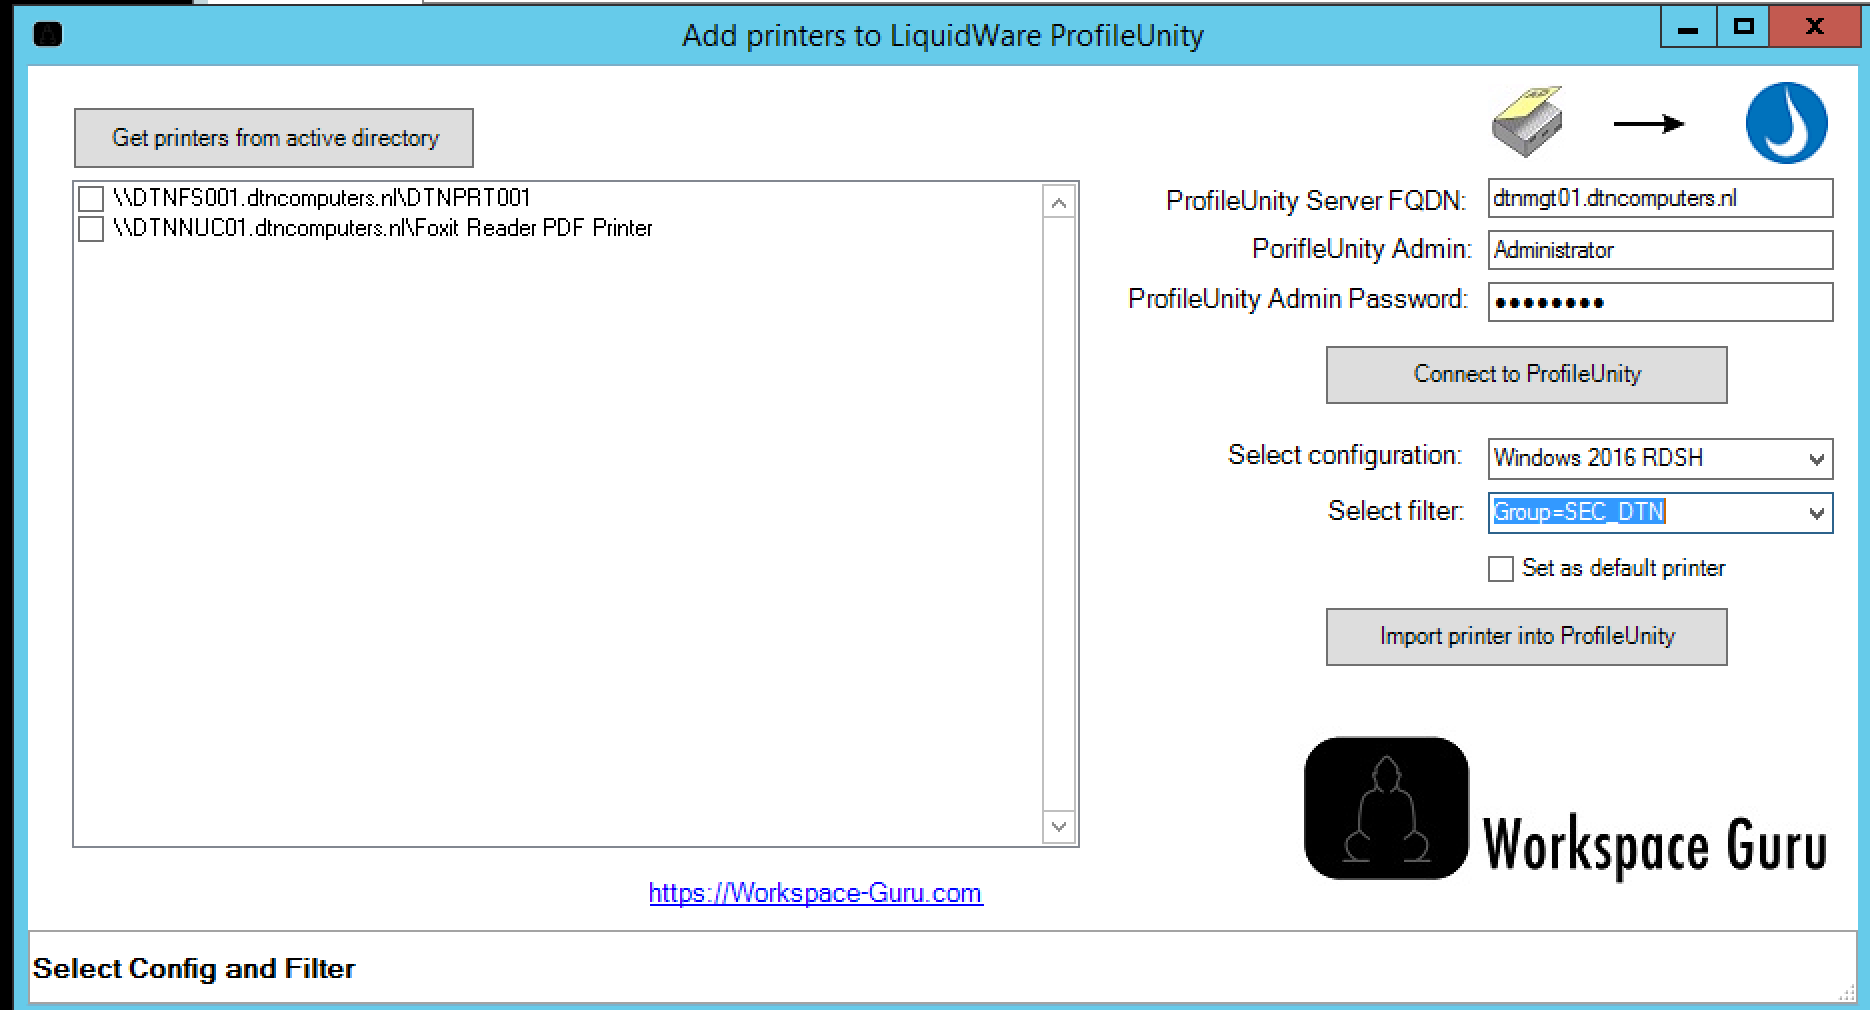 Liquidware ProfileUnity Printer Tools import from Active